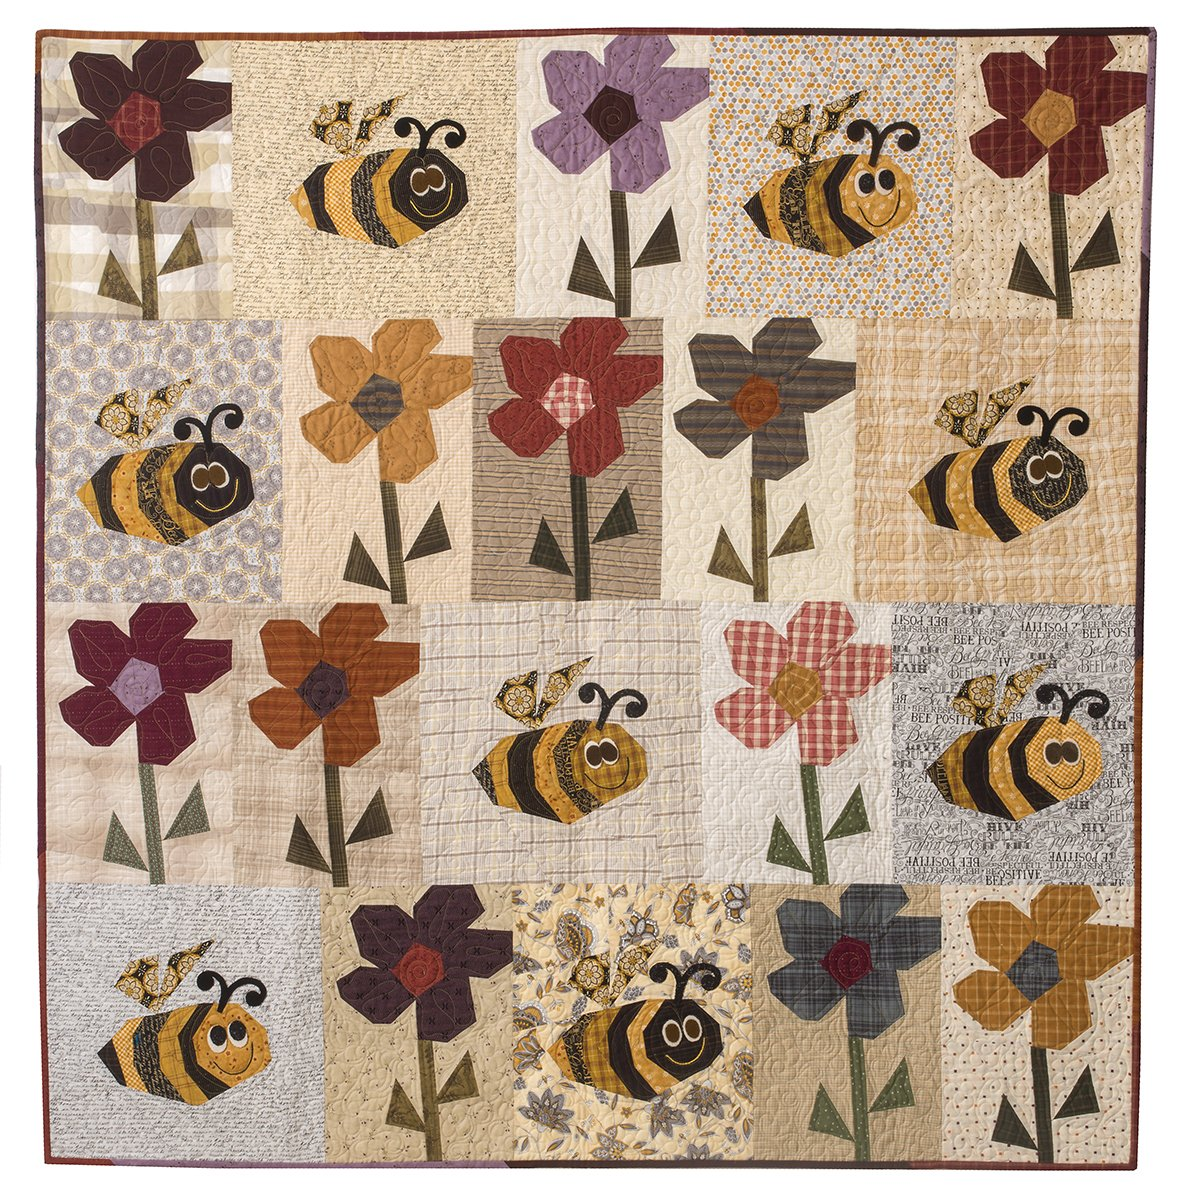 Crazy Busy Bees Kit